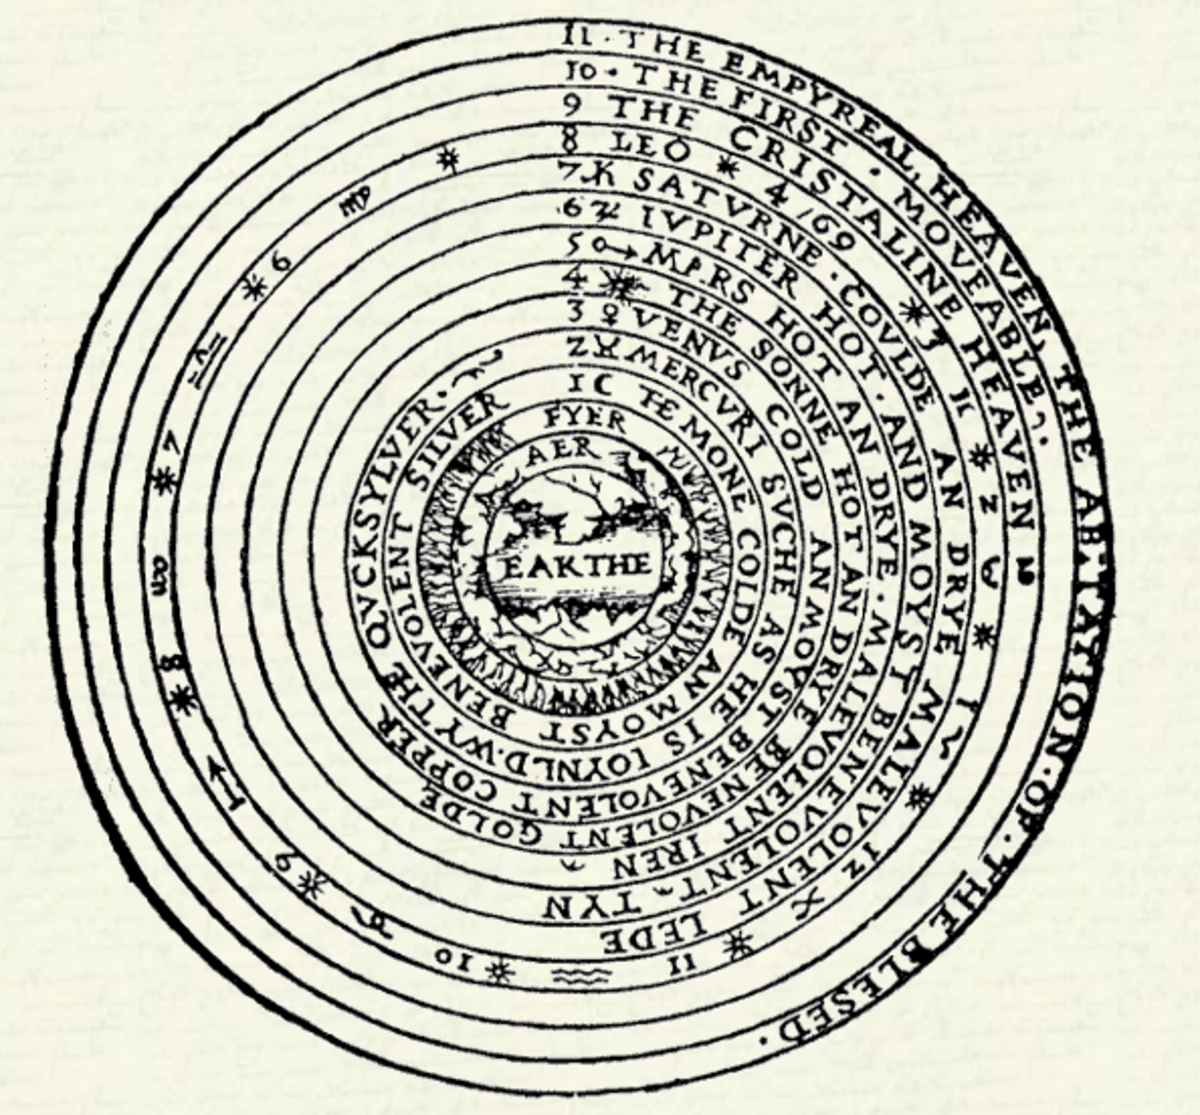 Andrew Borde's 1542 Diagram Depicting the Universe